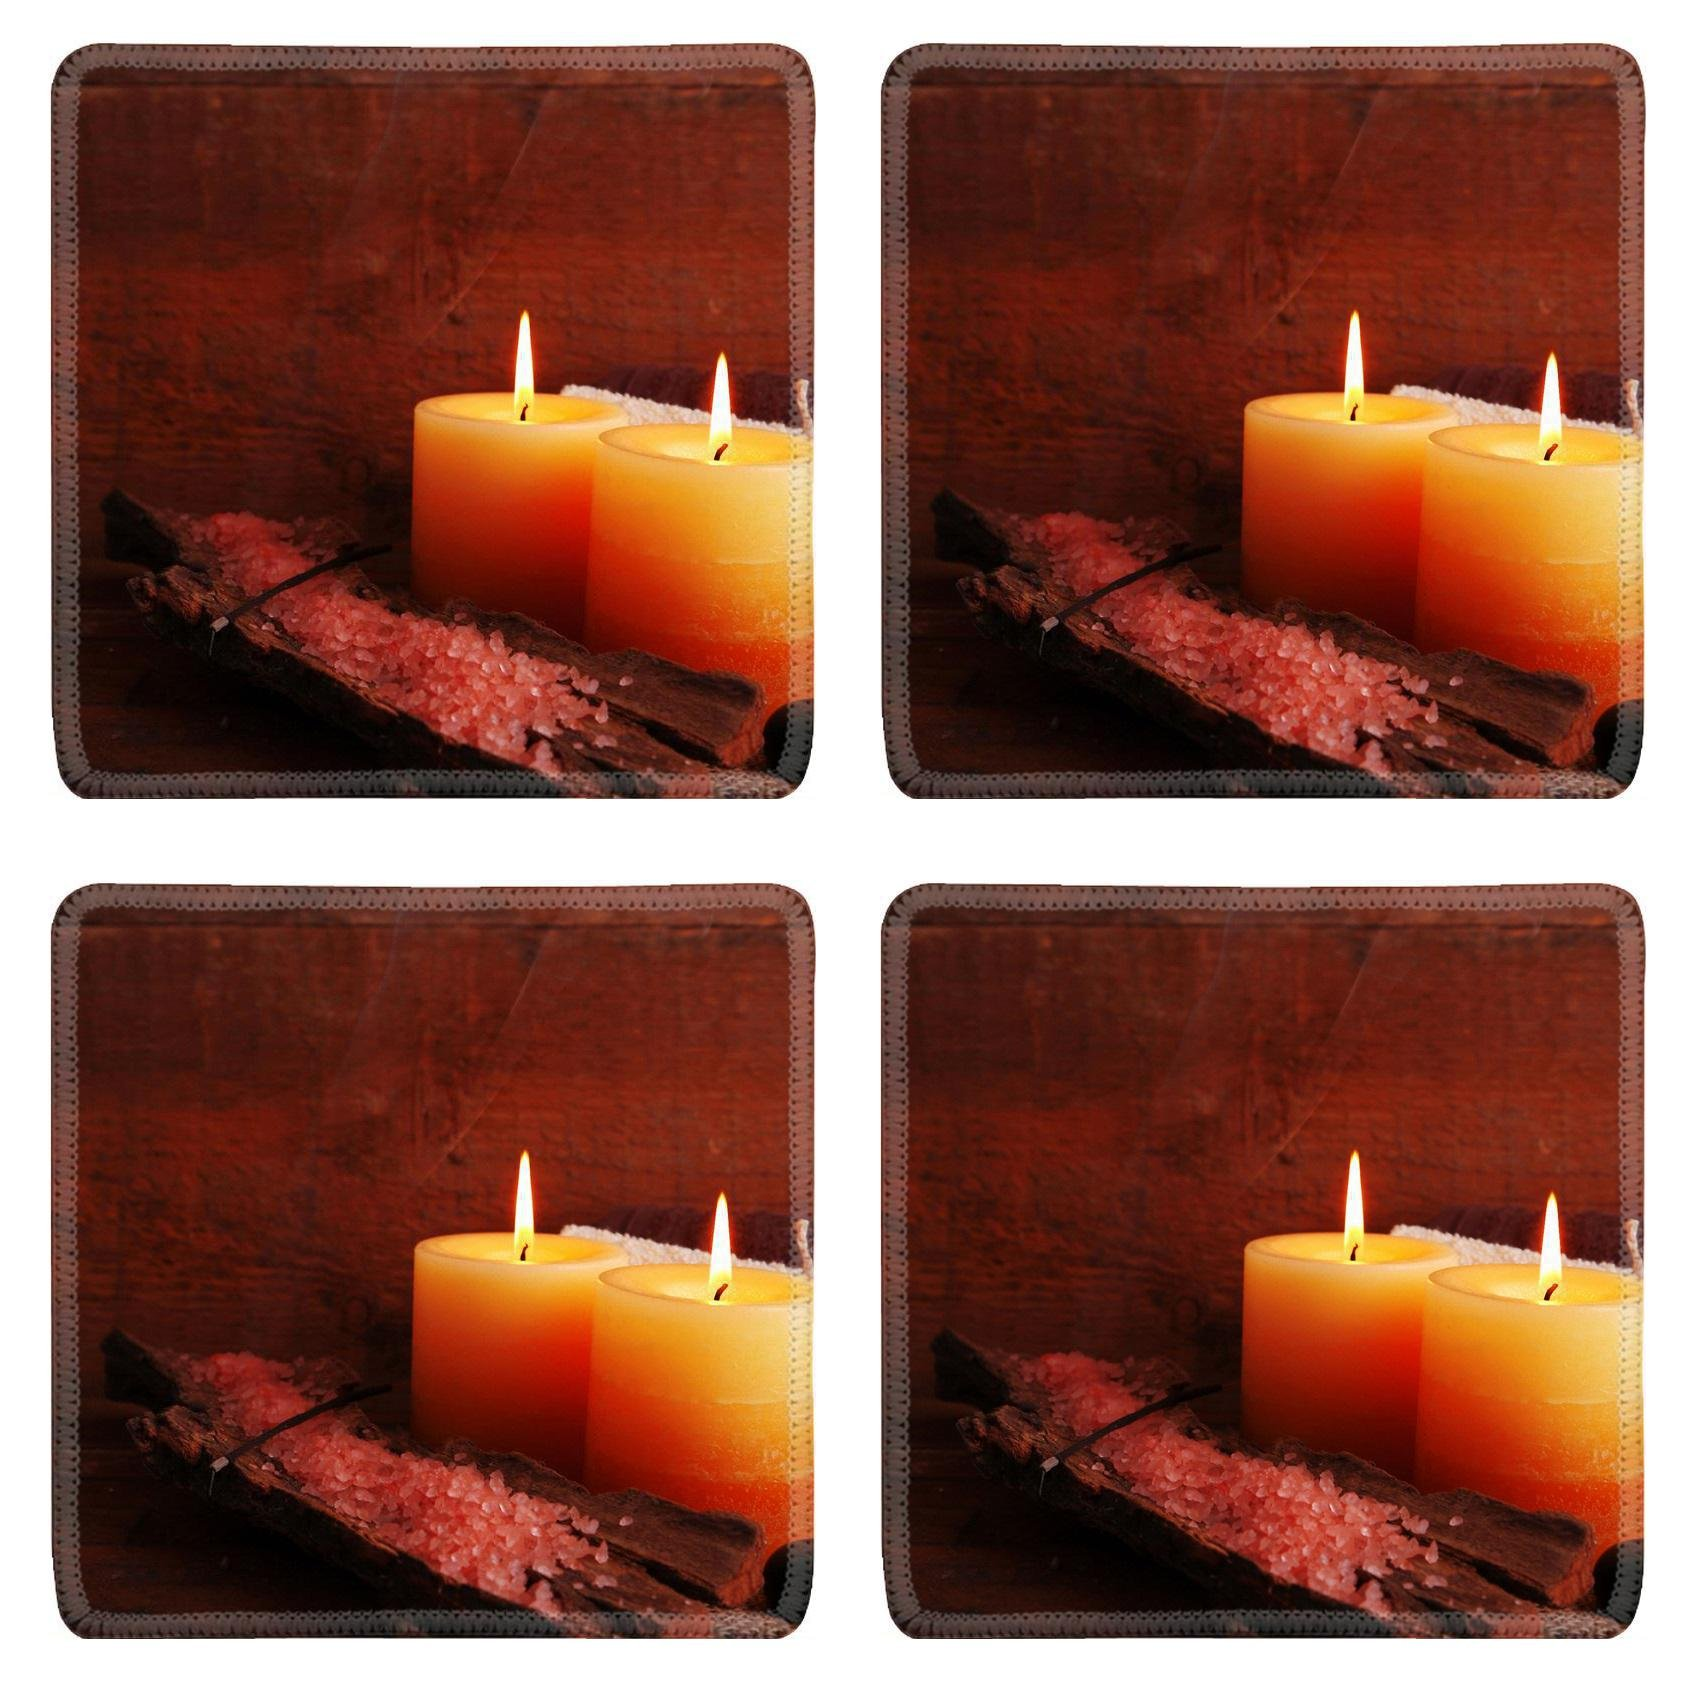 MSD Square Coasters Non-Slip Natural Rubber Desk Coasters design 34002625 Spa stones with candles and sea salt on wooden background